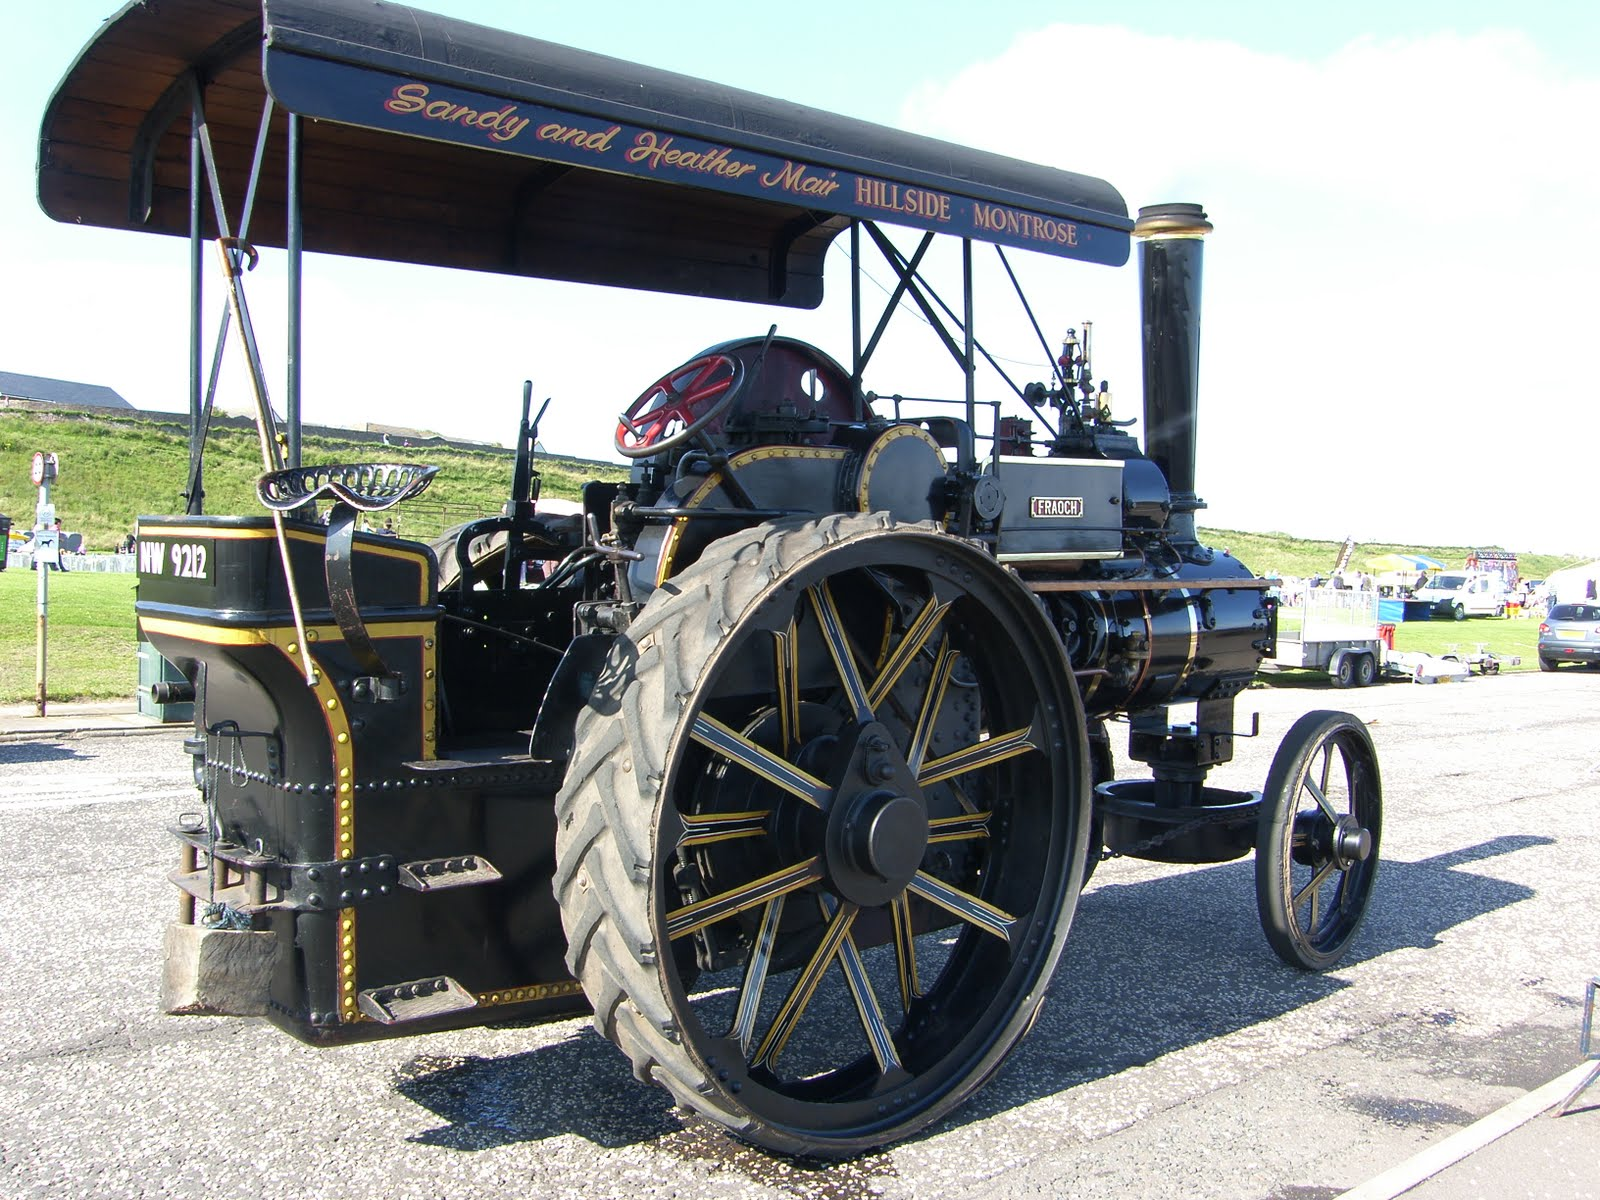 Vintage Steam Engines 76